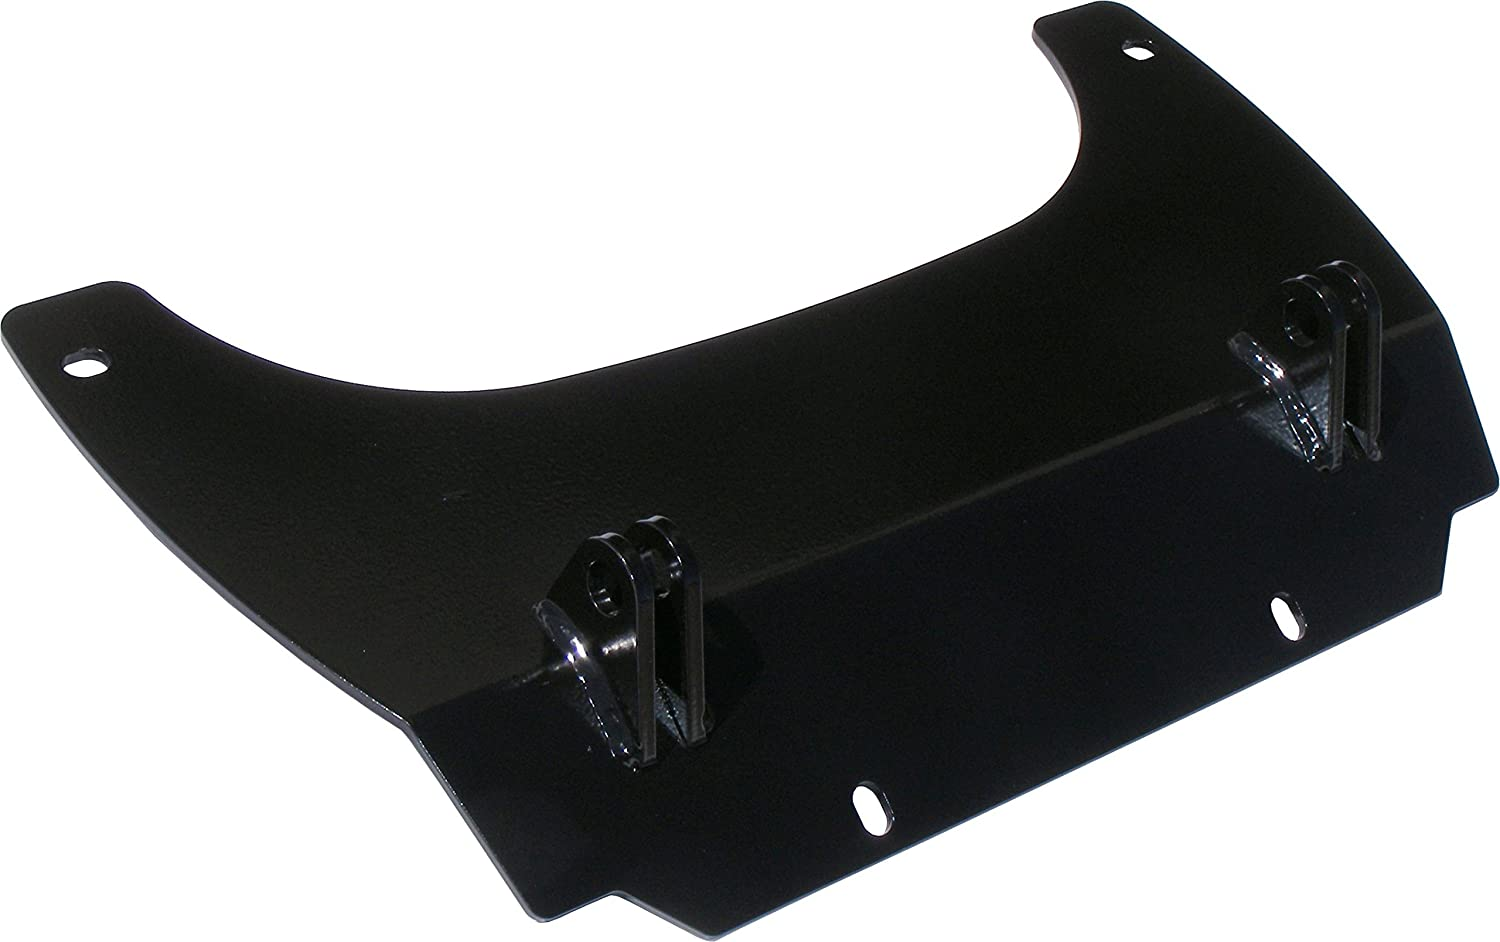 KFI Products 105395 UTV Plow Mount for John Deere